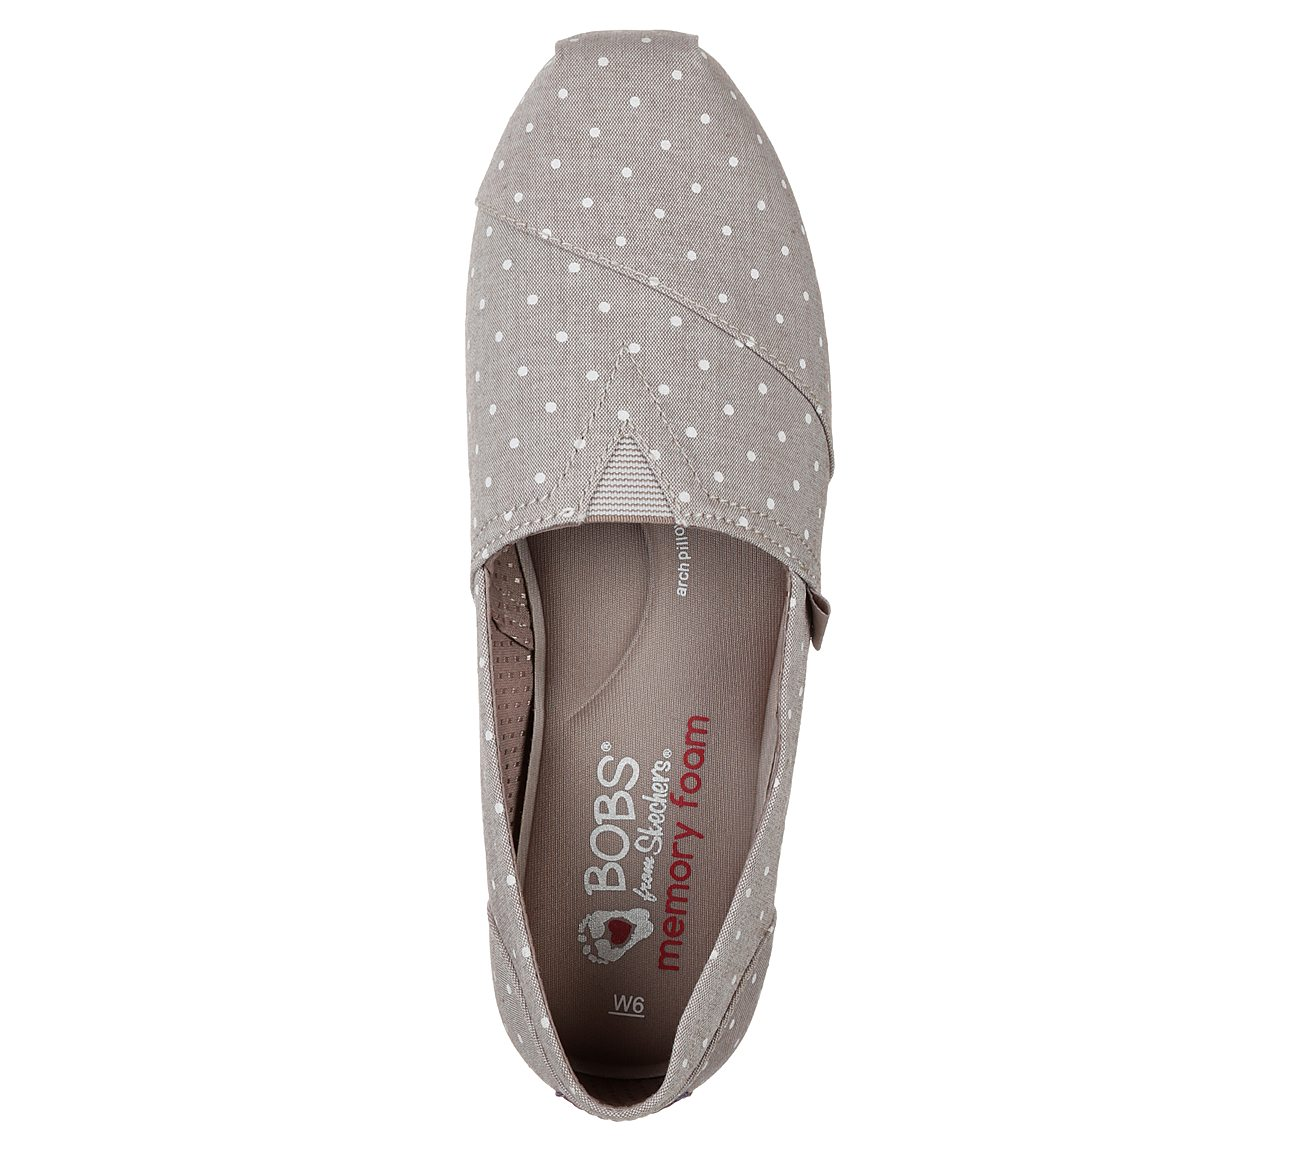 7cd8dab1a99e Buy SKECHERS BOBS Plush - Hot Spot BOBS Shoes only  42.00